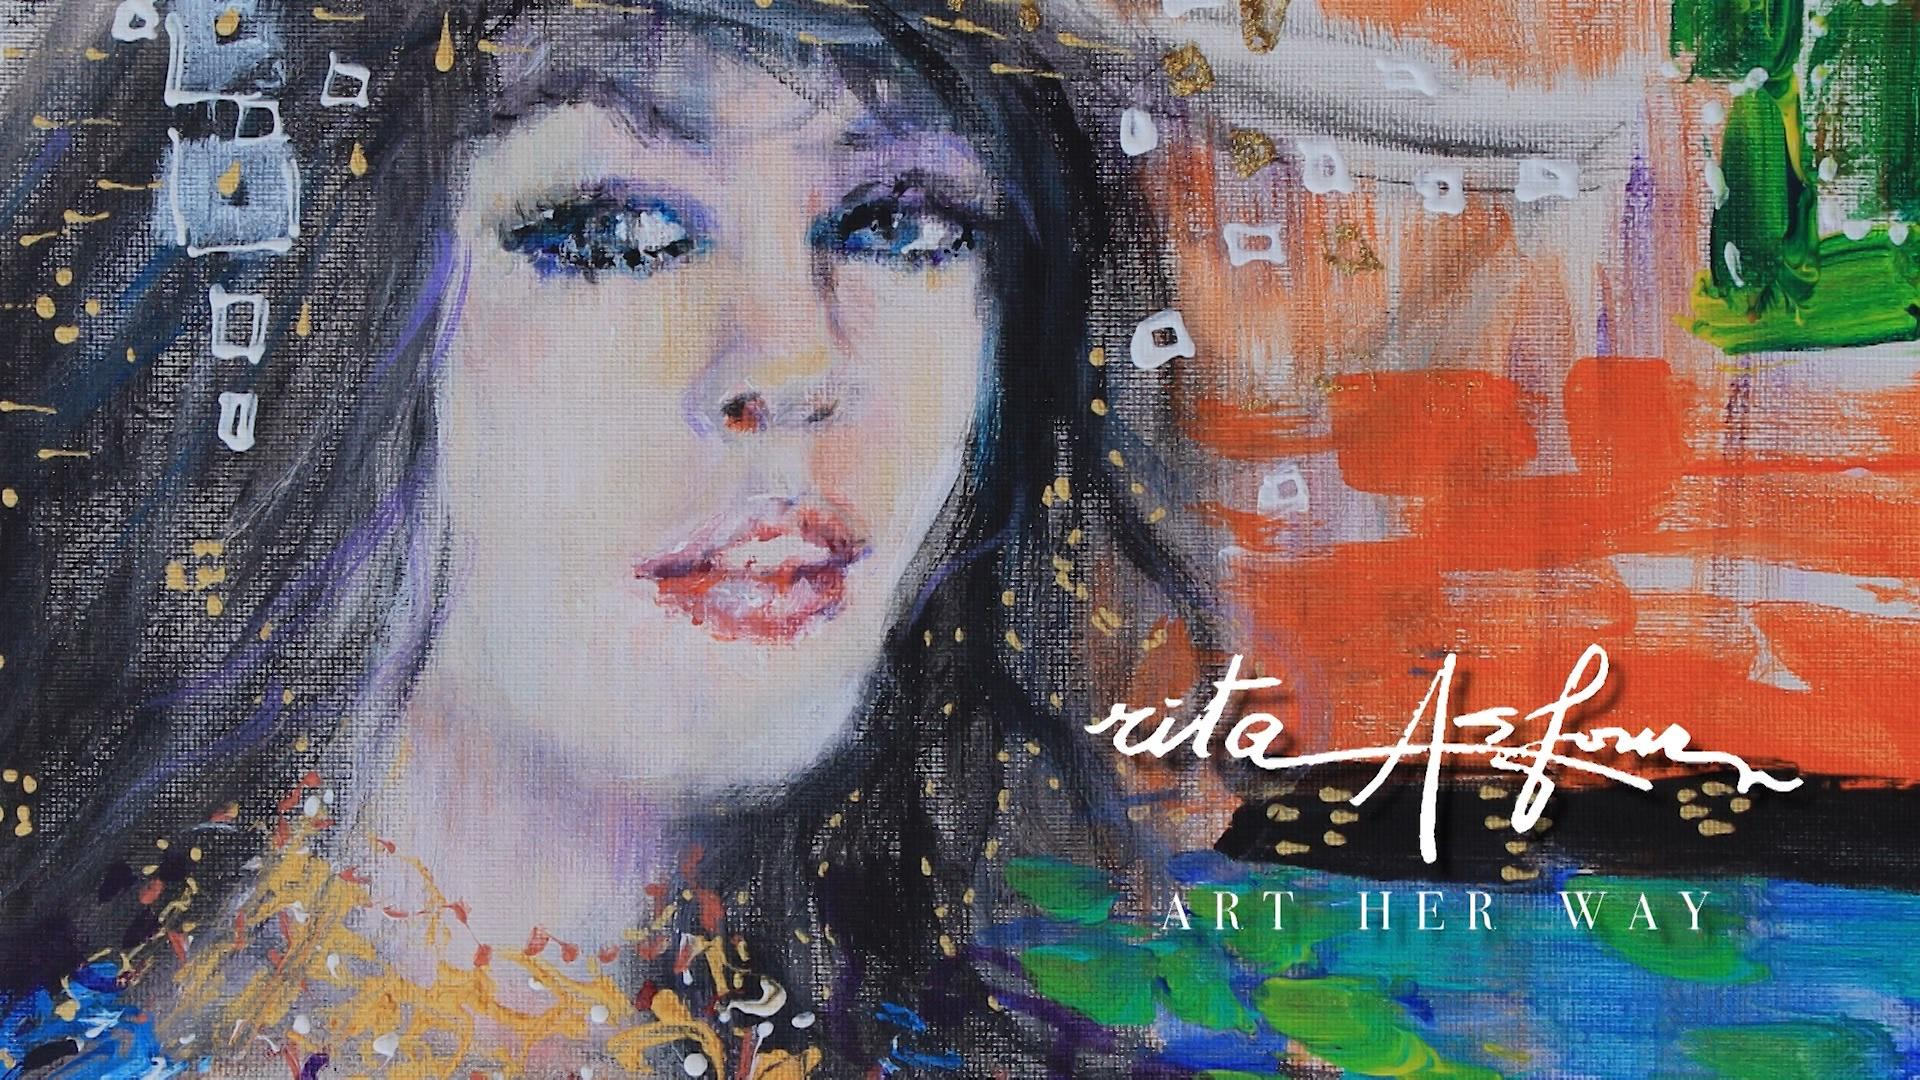 Rita Asfour: Art Her Way